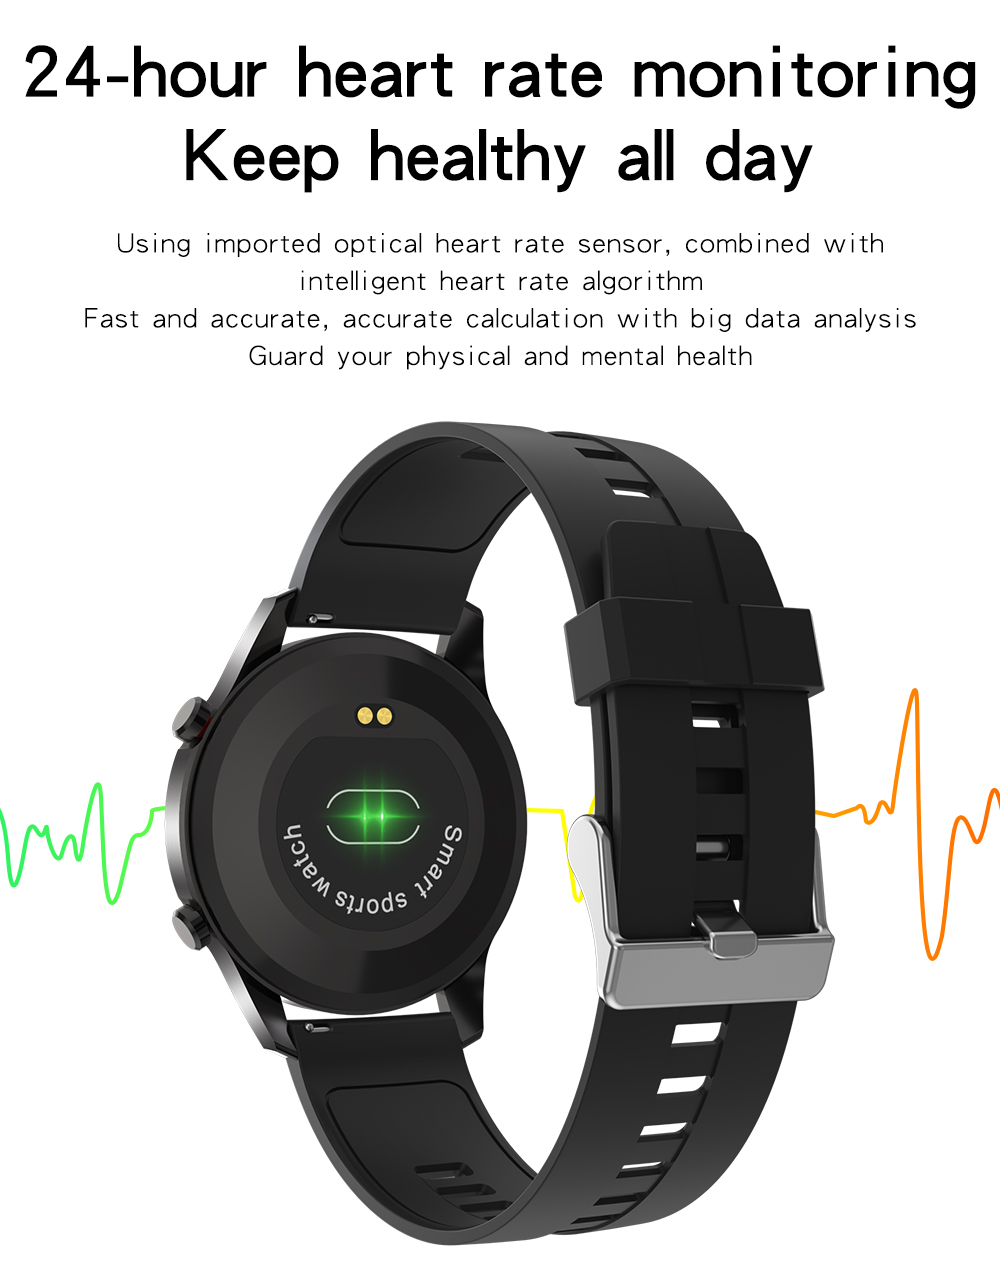 H8fca187200ac488d8edf2d4fda7202a0o XUESEVEN 2021 HD Full circle touch screen Mens Smart Watches IP68 Waterproof Sports Fitness Watch Fashion Smart Watch for men